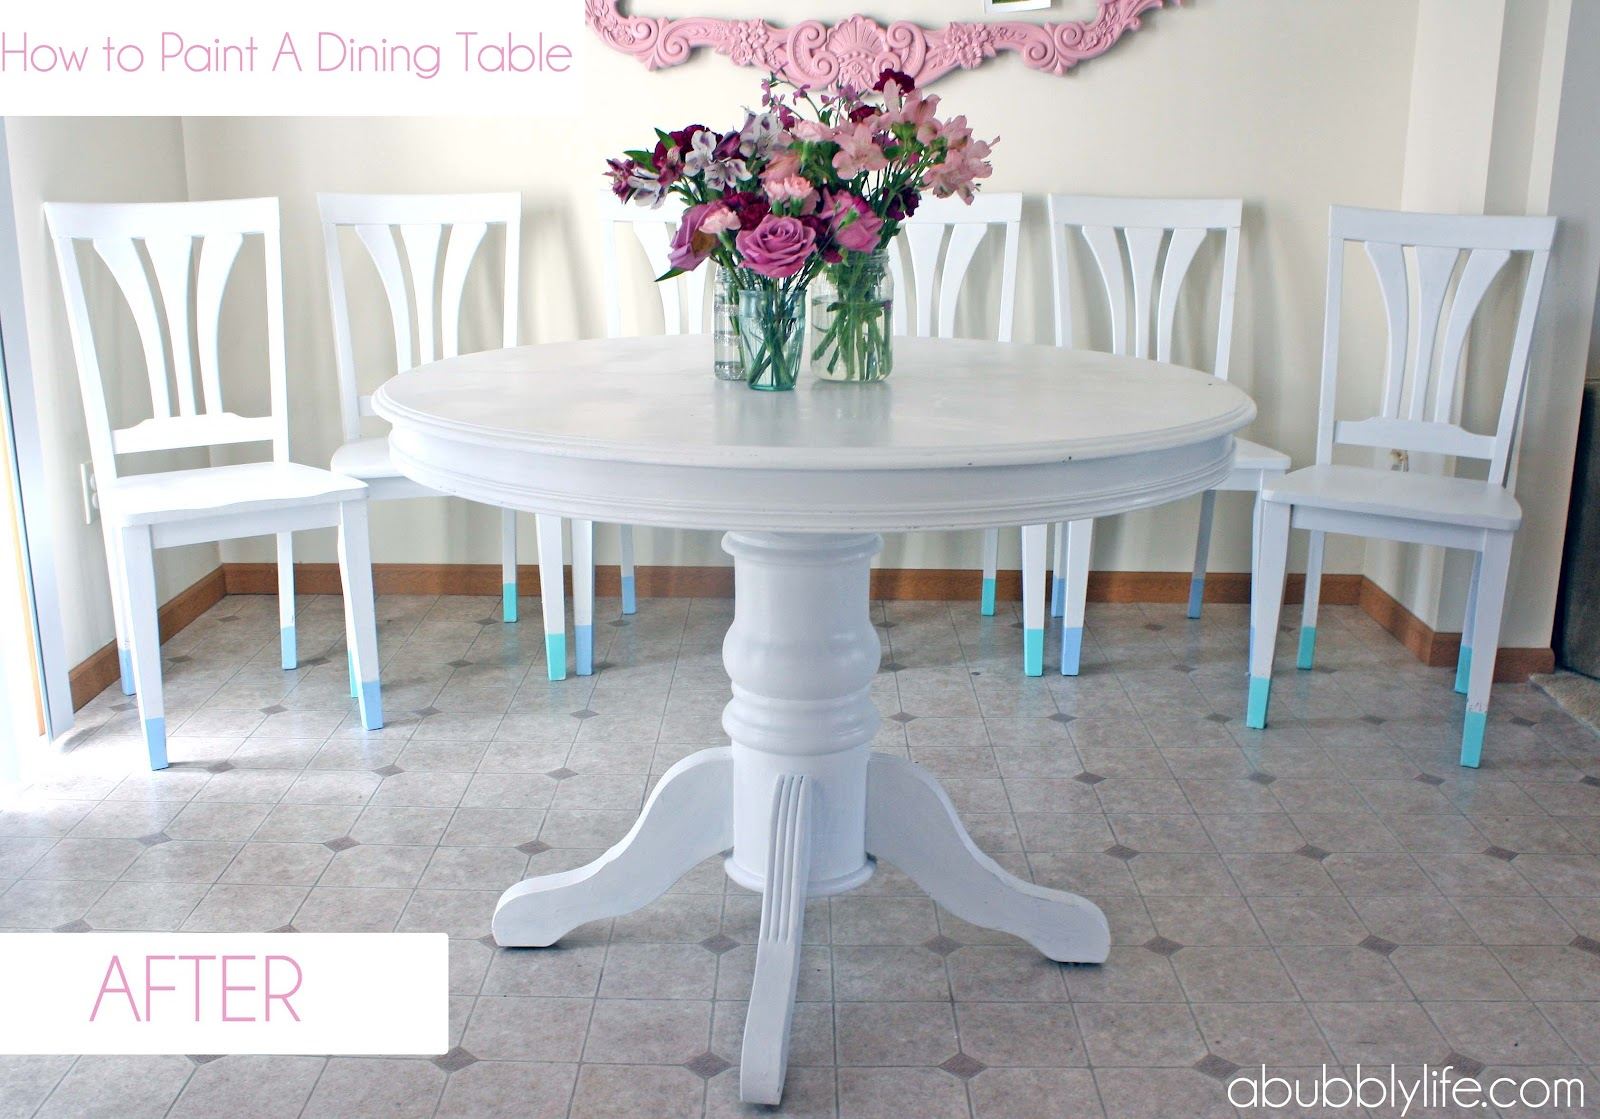 how to paint dining table chairs refinishing kitchen table How to Paint a Dining Room Table Chairs Makeover Reveal